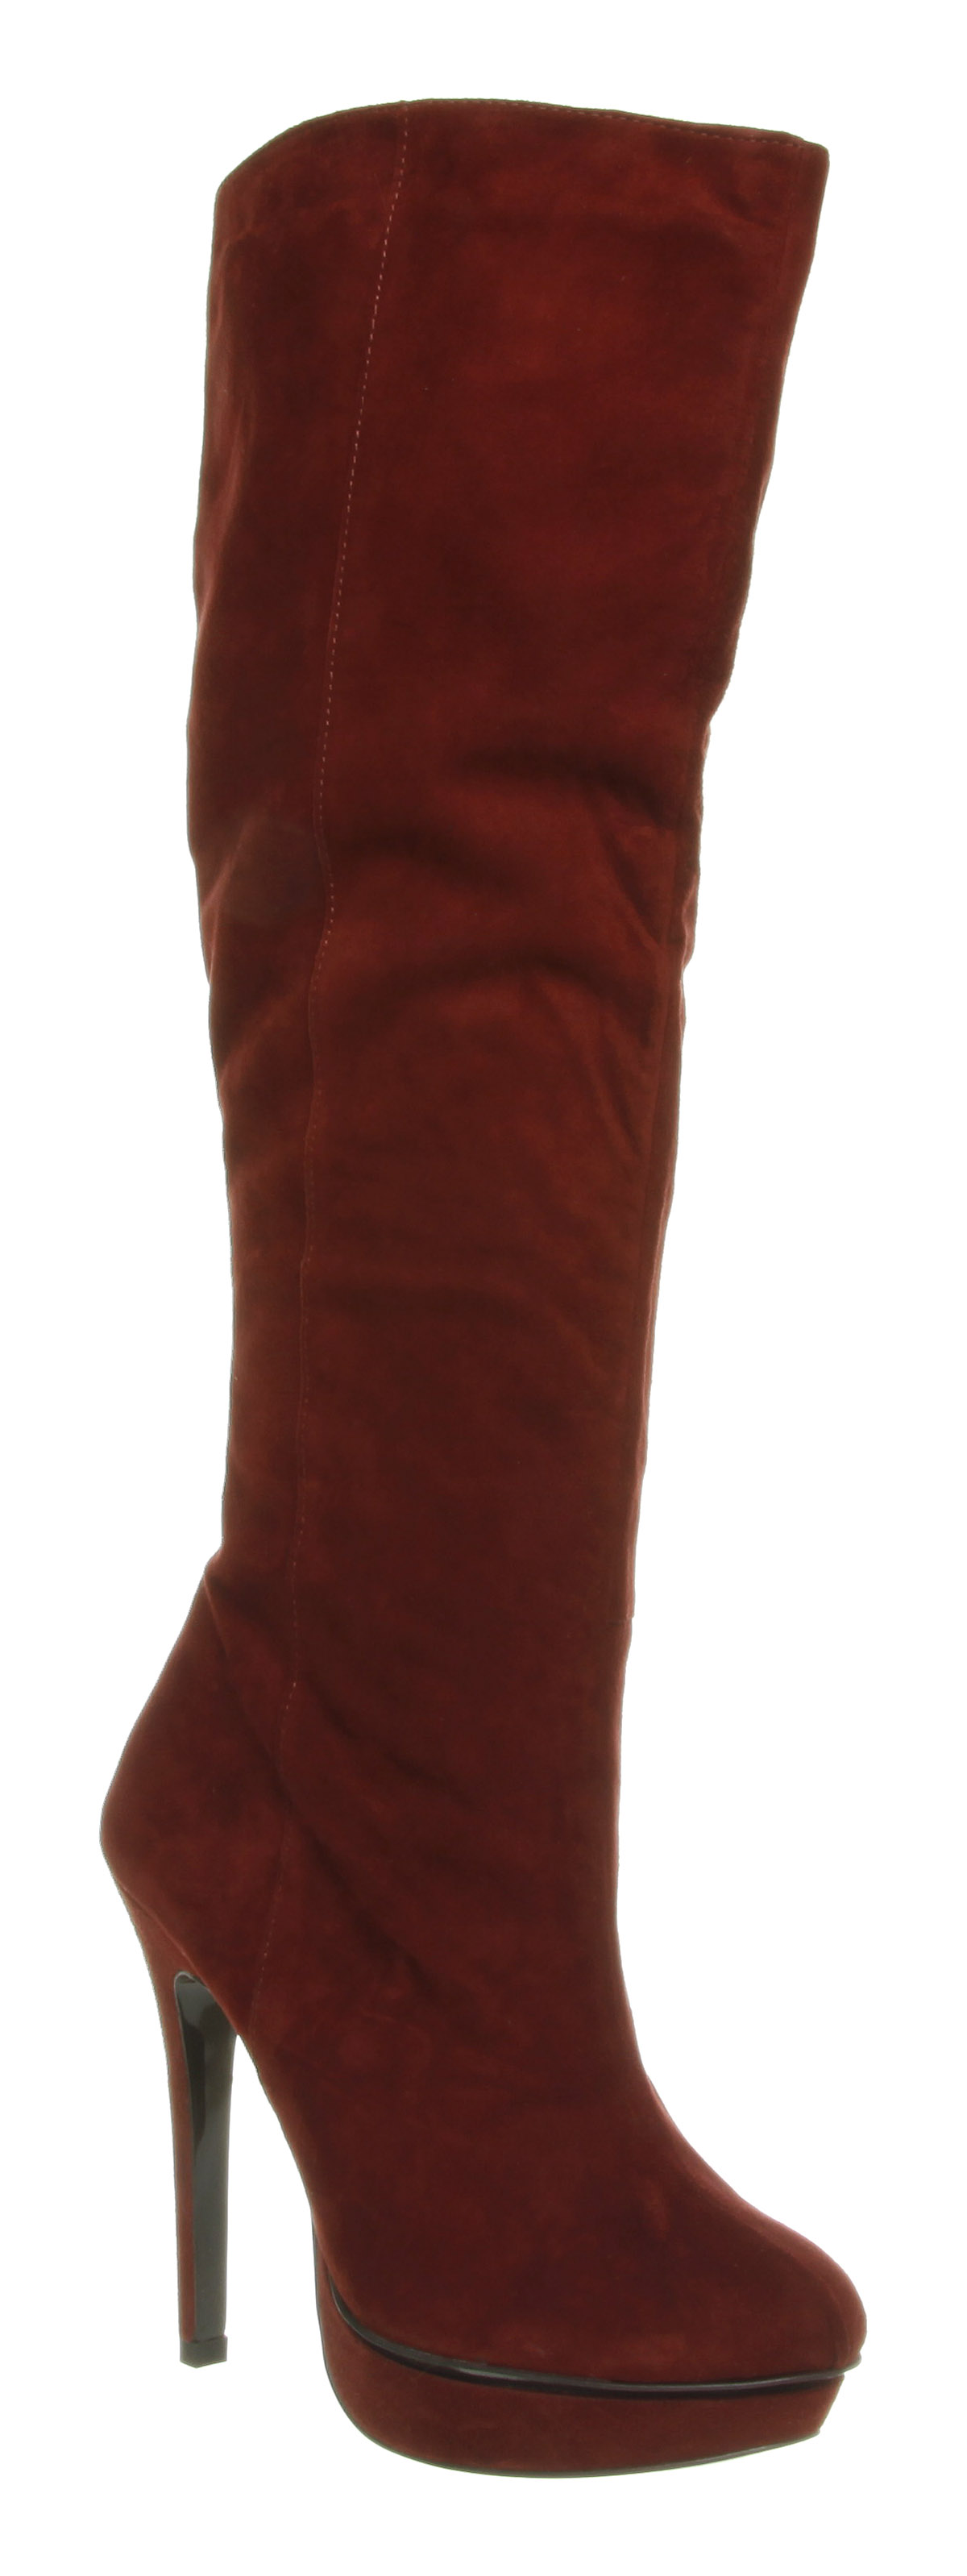 Office Jameela platform knee high boots